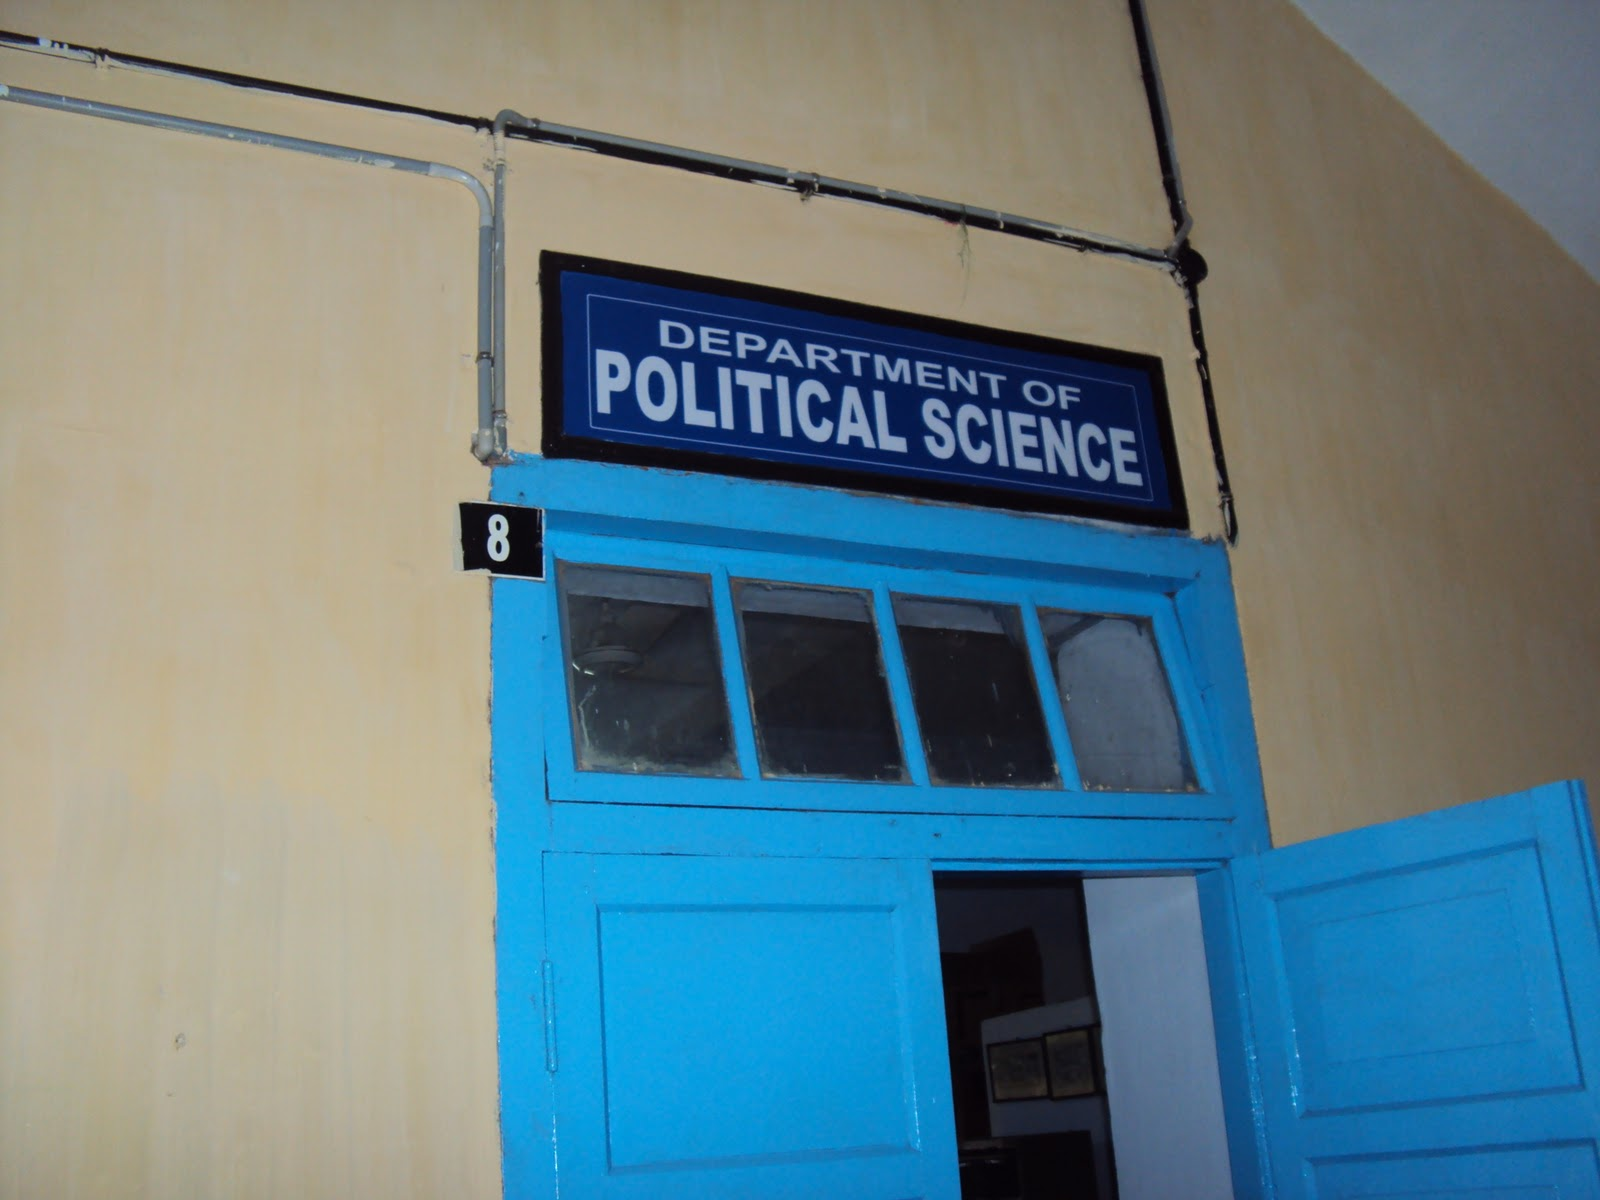 What would be a good theoretical Political Science essay topic that I can apply to a country?